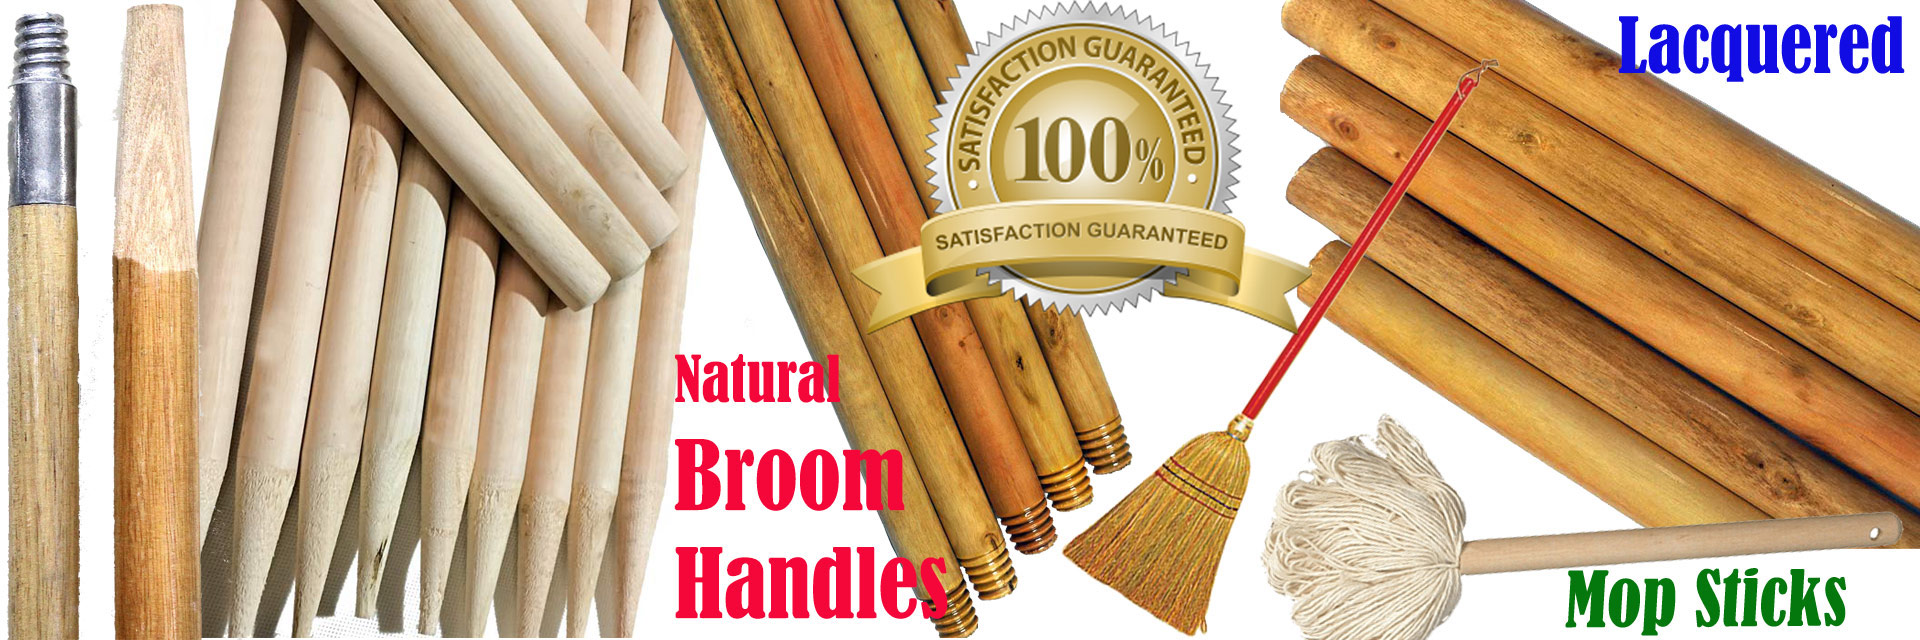 Natural sanded wooden handles factory